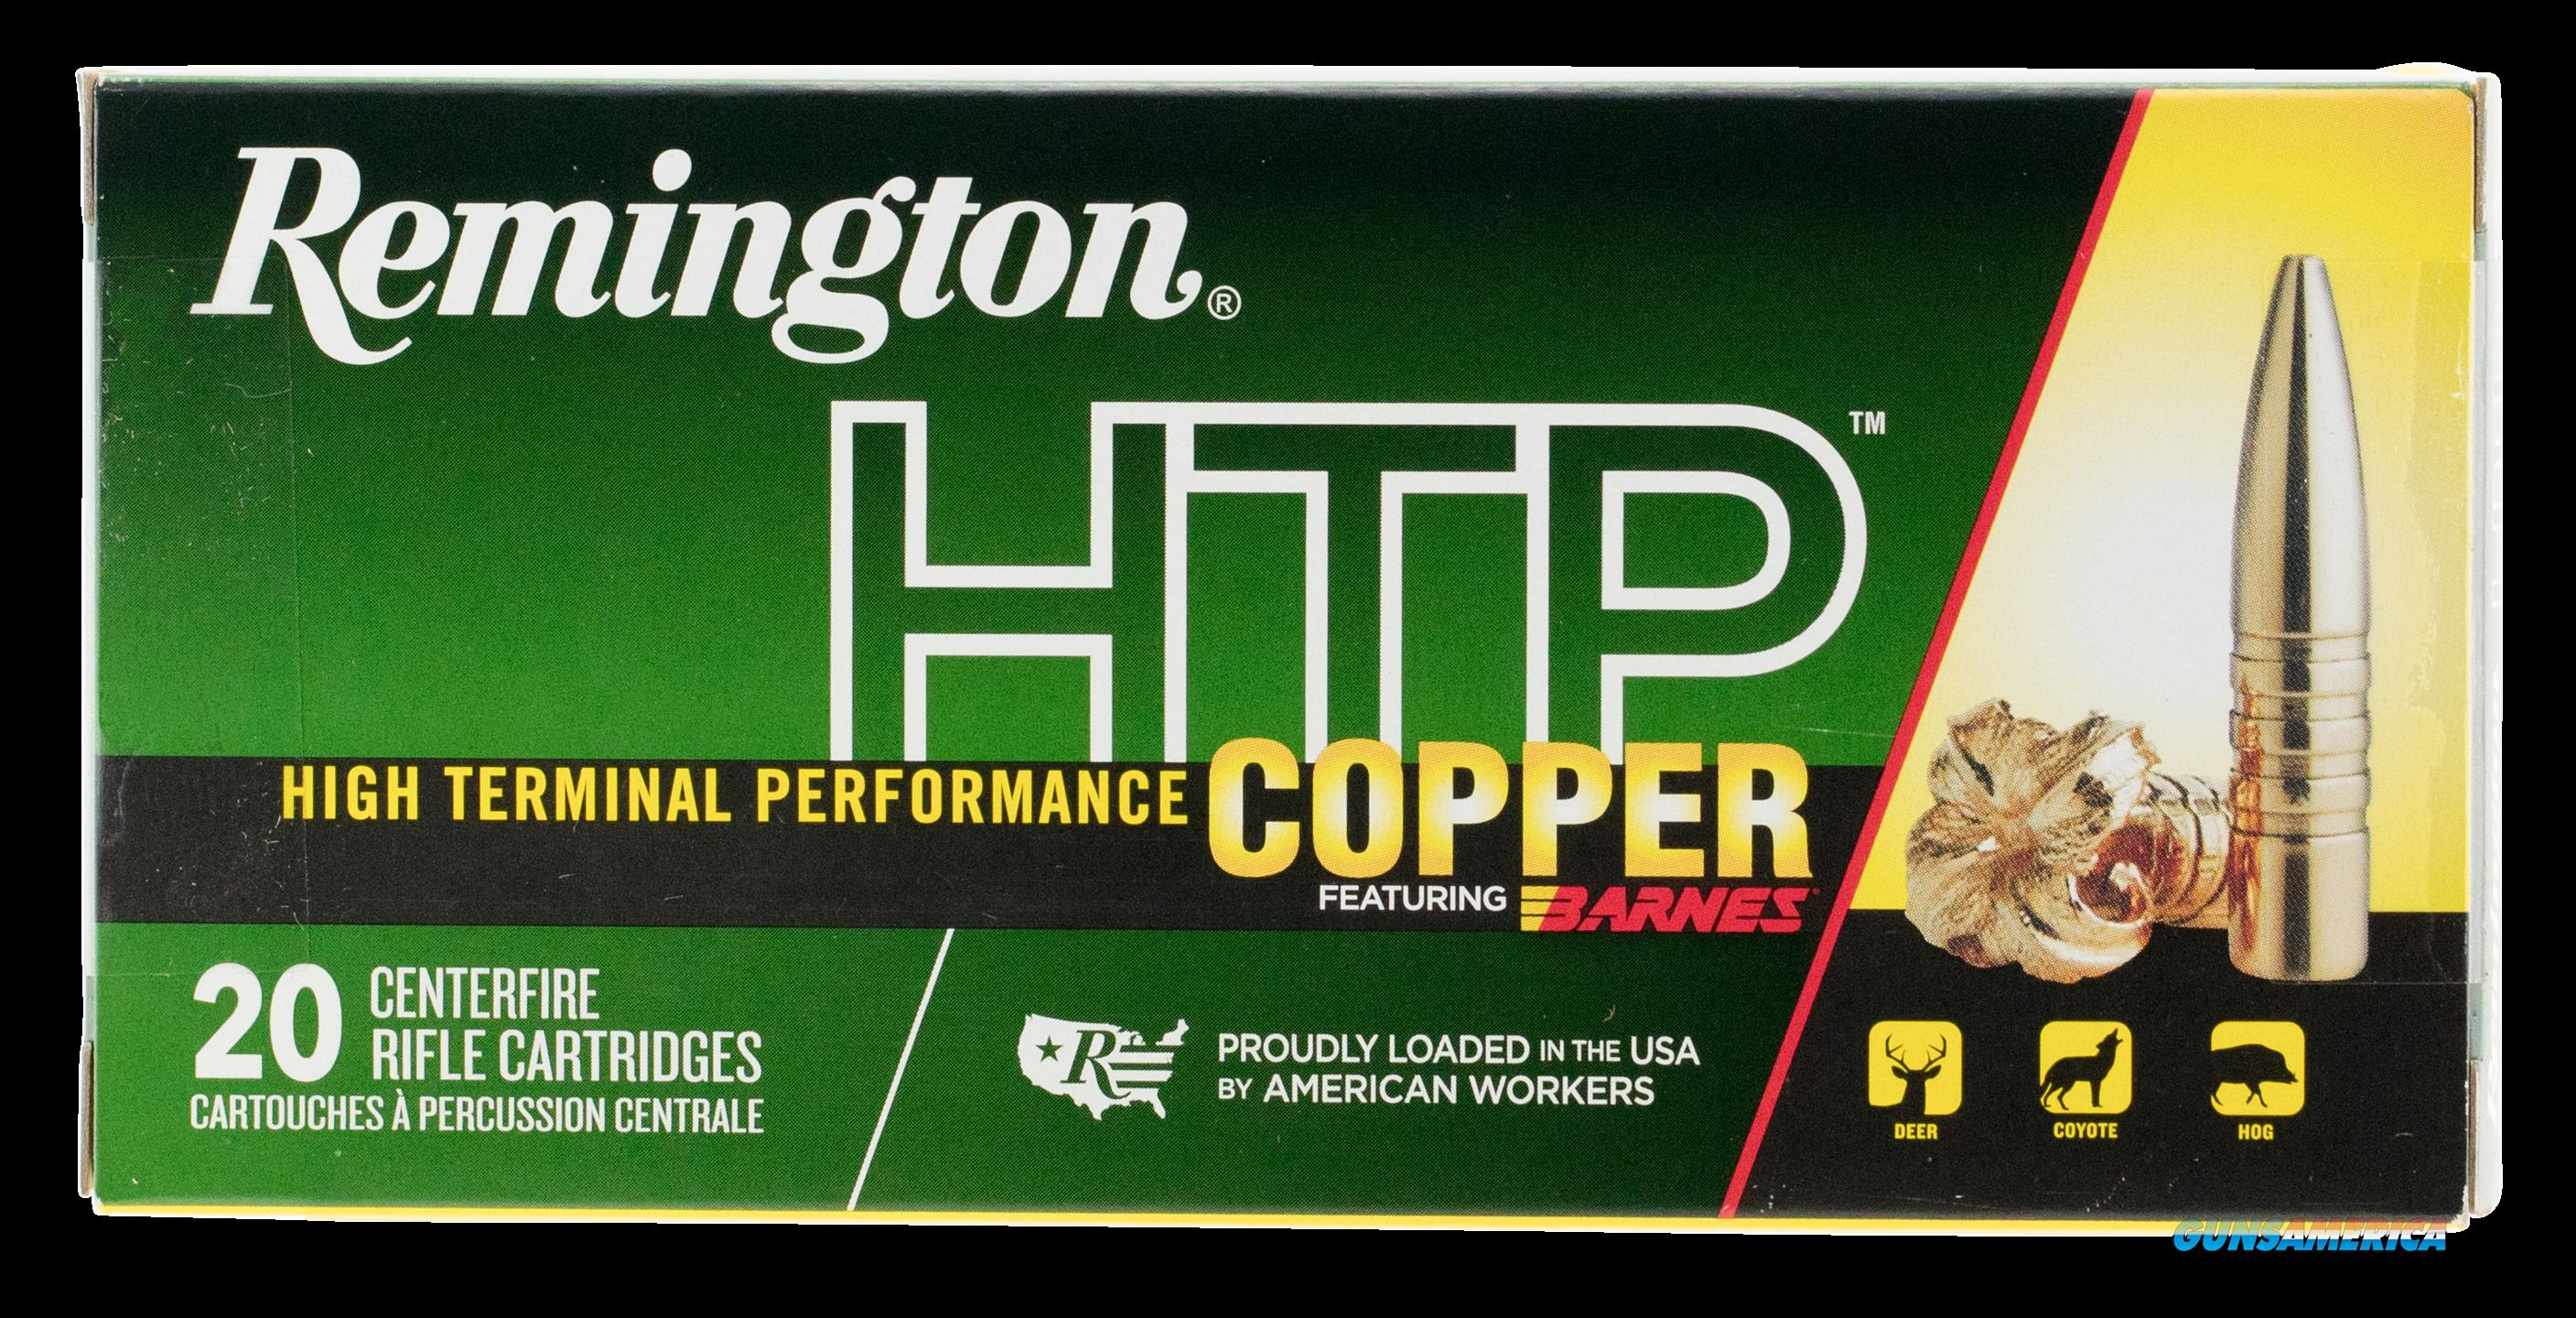 Remington Ammunition Htp Copper, Rem 27716 Htp65cr   Htp Copper 120 Tsx Bt 20-10  Guns > Pistols > 1911 Pistol Copies (non-Colt)